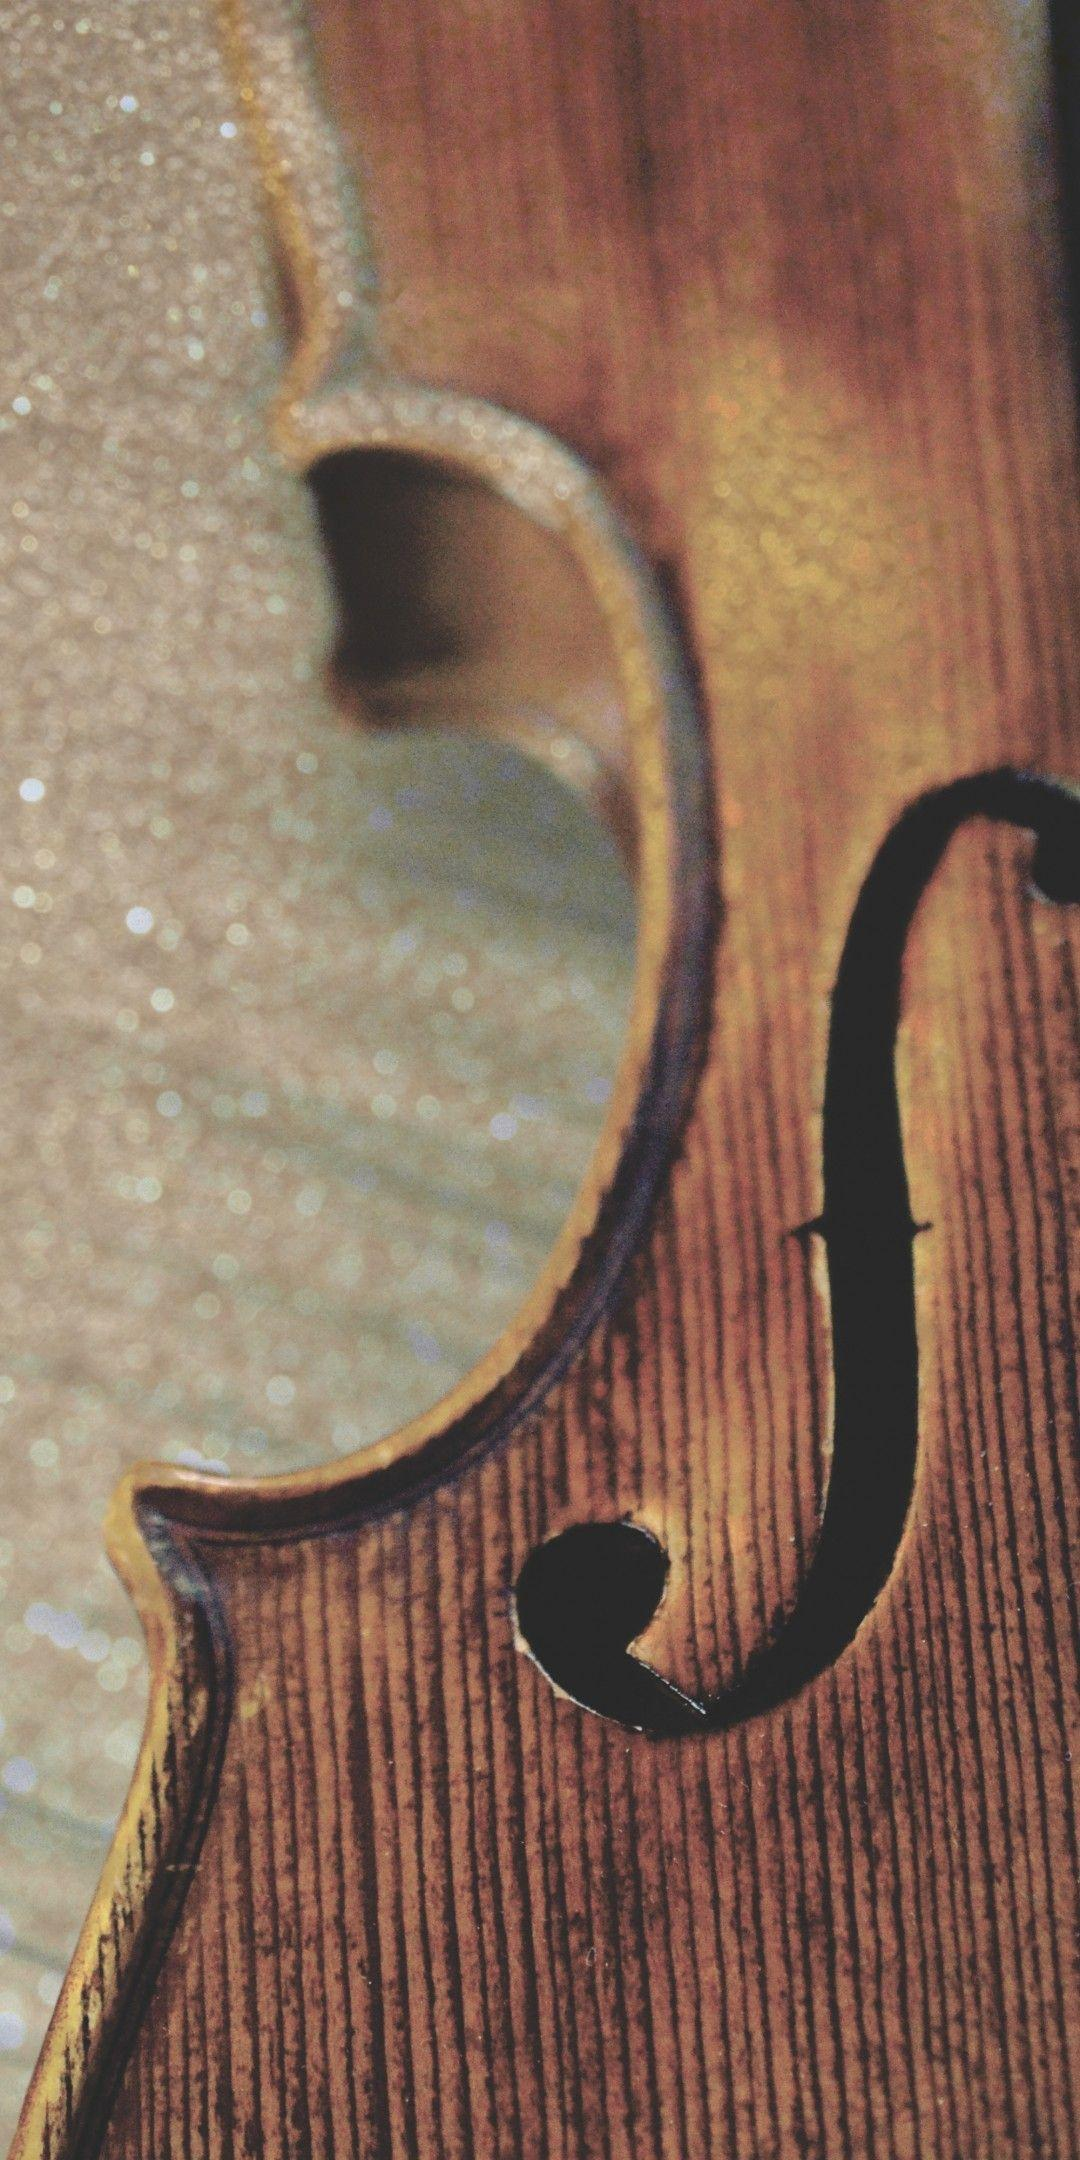 Download 1080x2160 Violin, Strings, Instrument, Music Wallpapers for